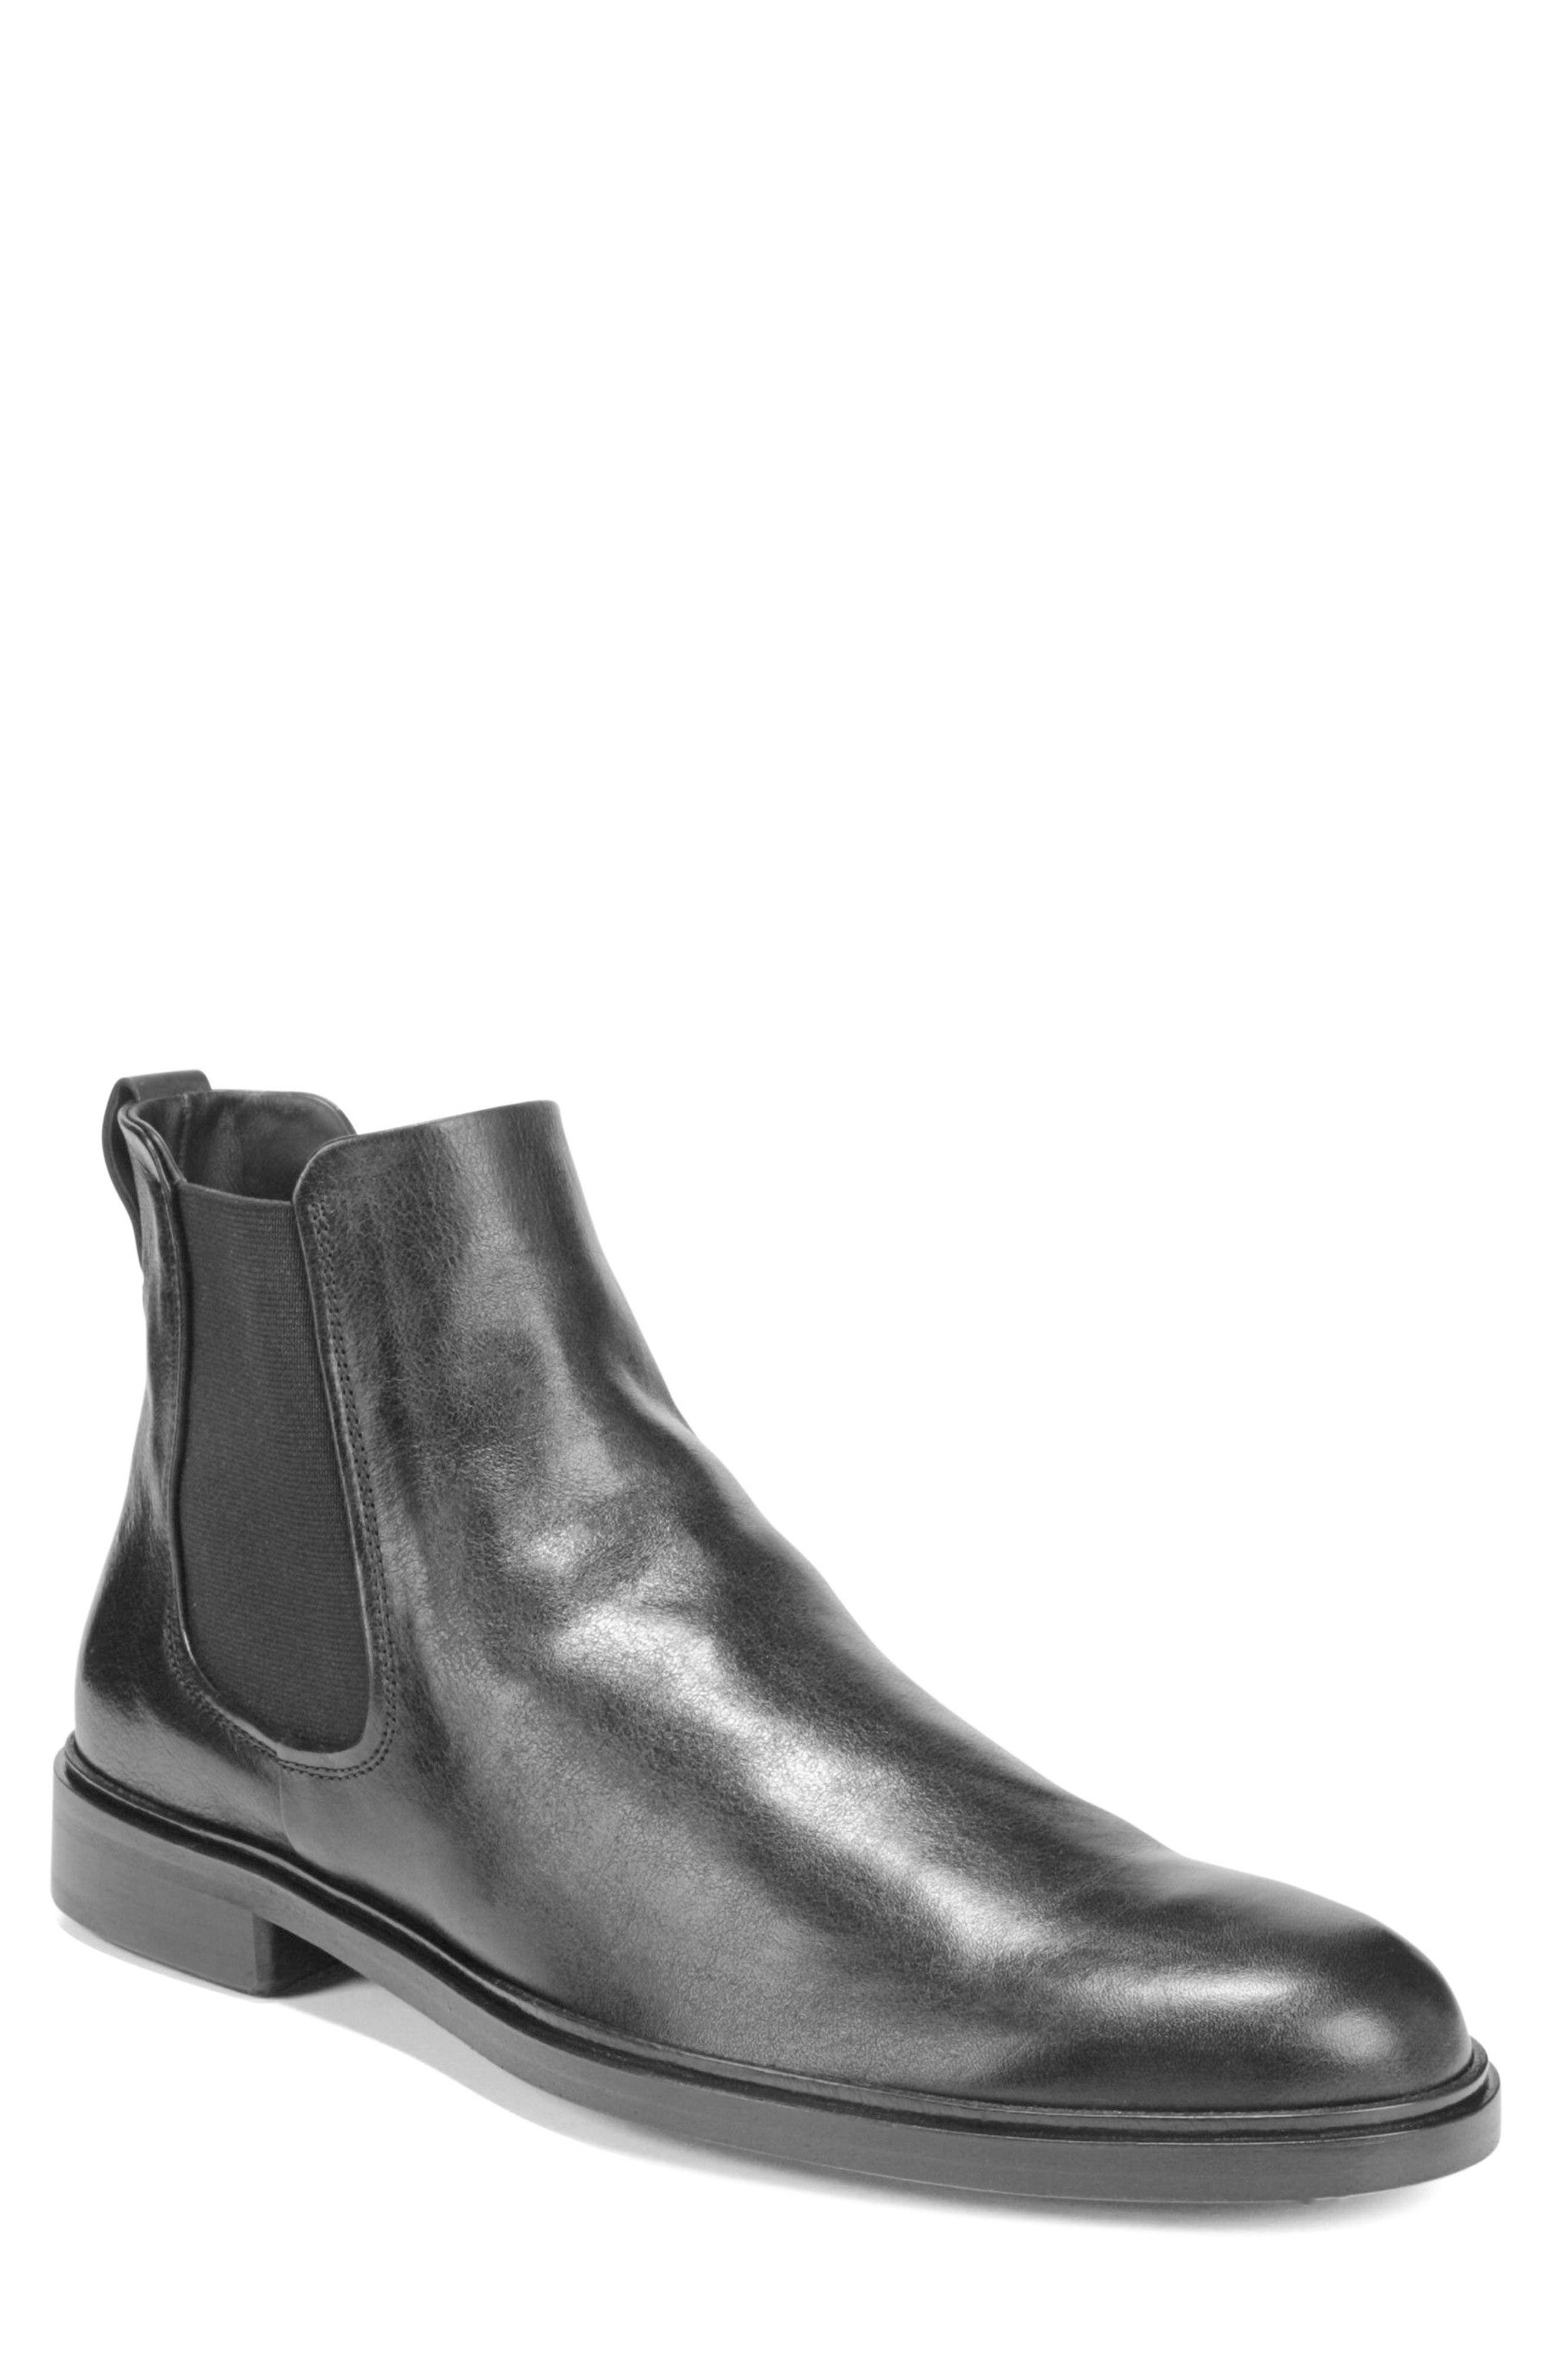 VINCE,                             Burroughs Chelsea Boot,                             Main thumbnail 1, color,                             BLACK